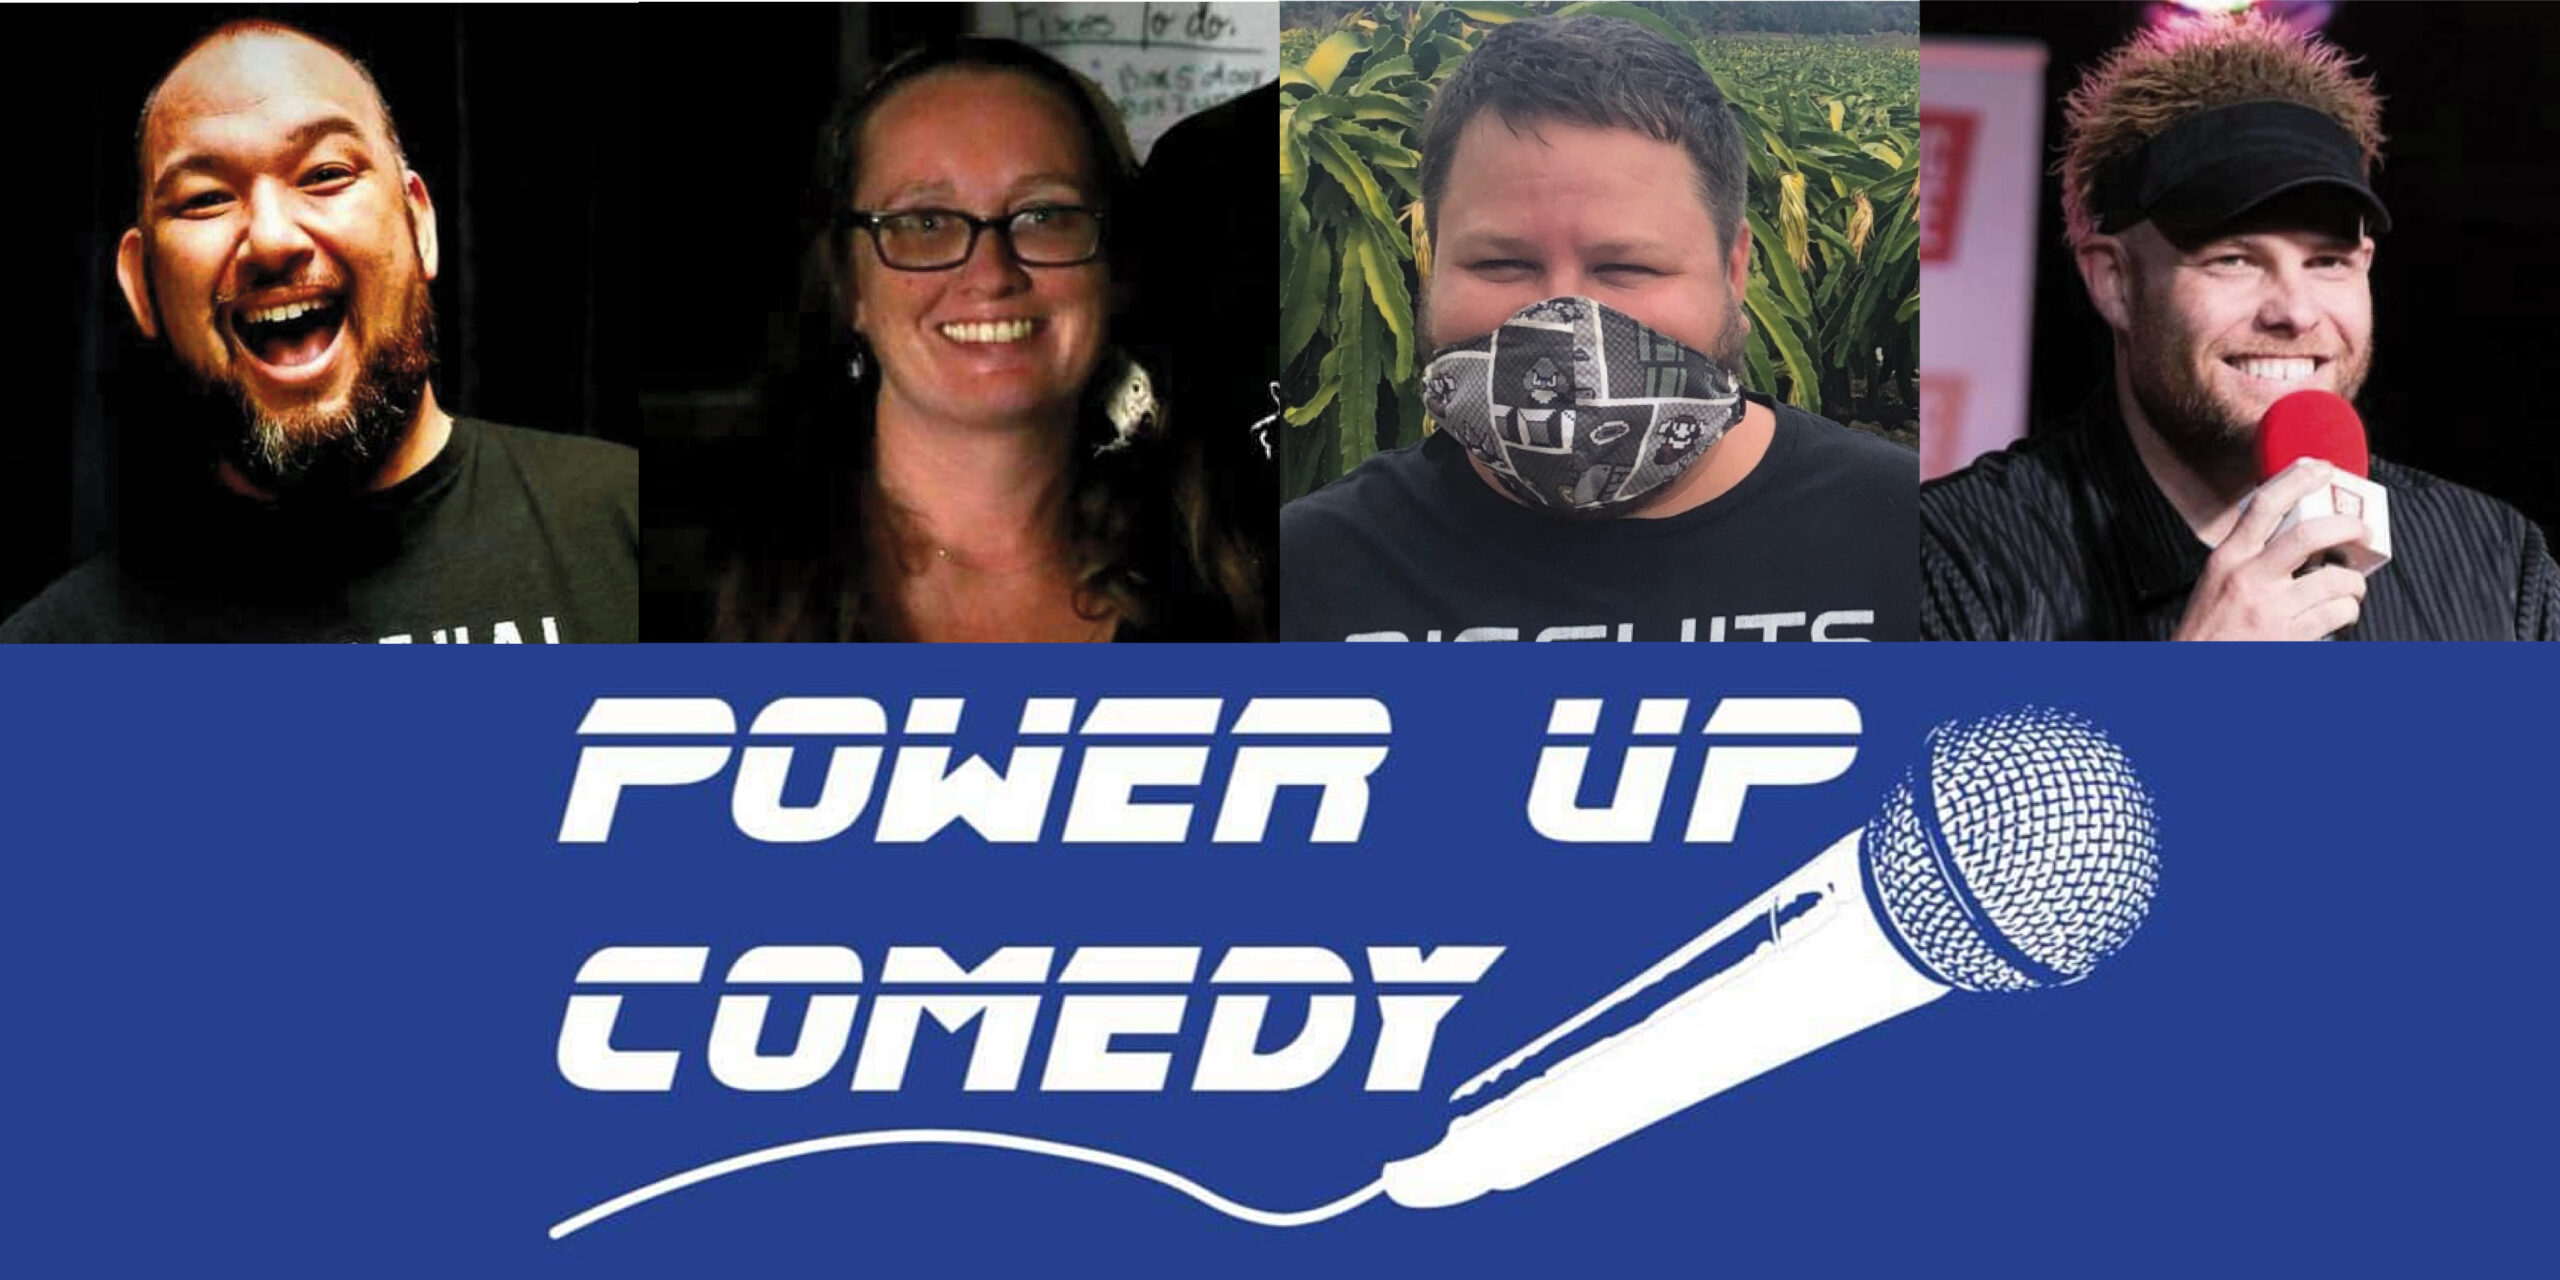 !Monday Funday! Power Up Comedy presents stand up